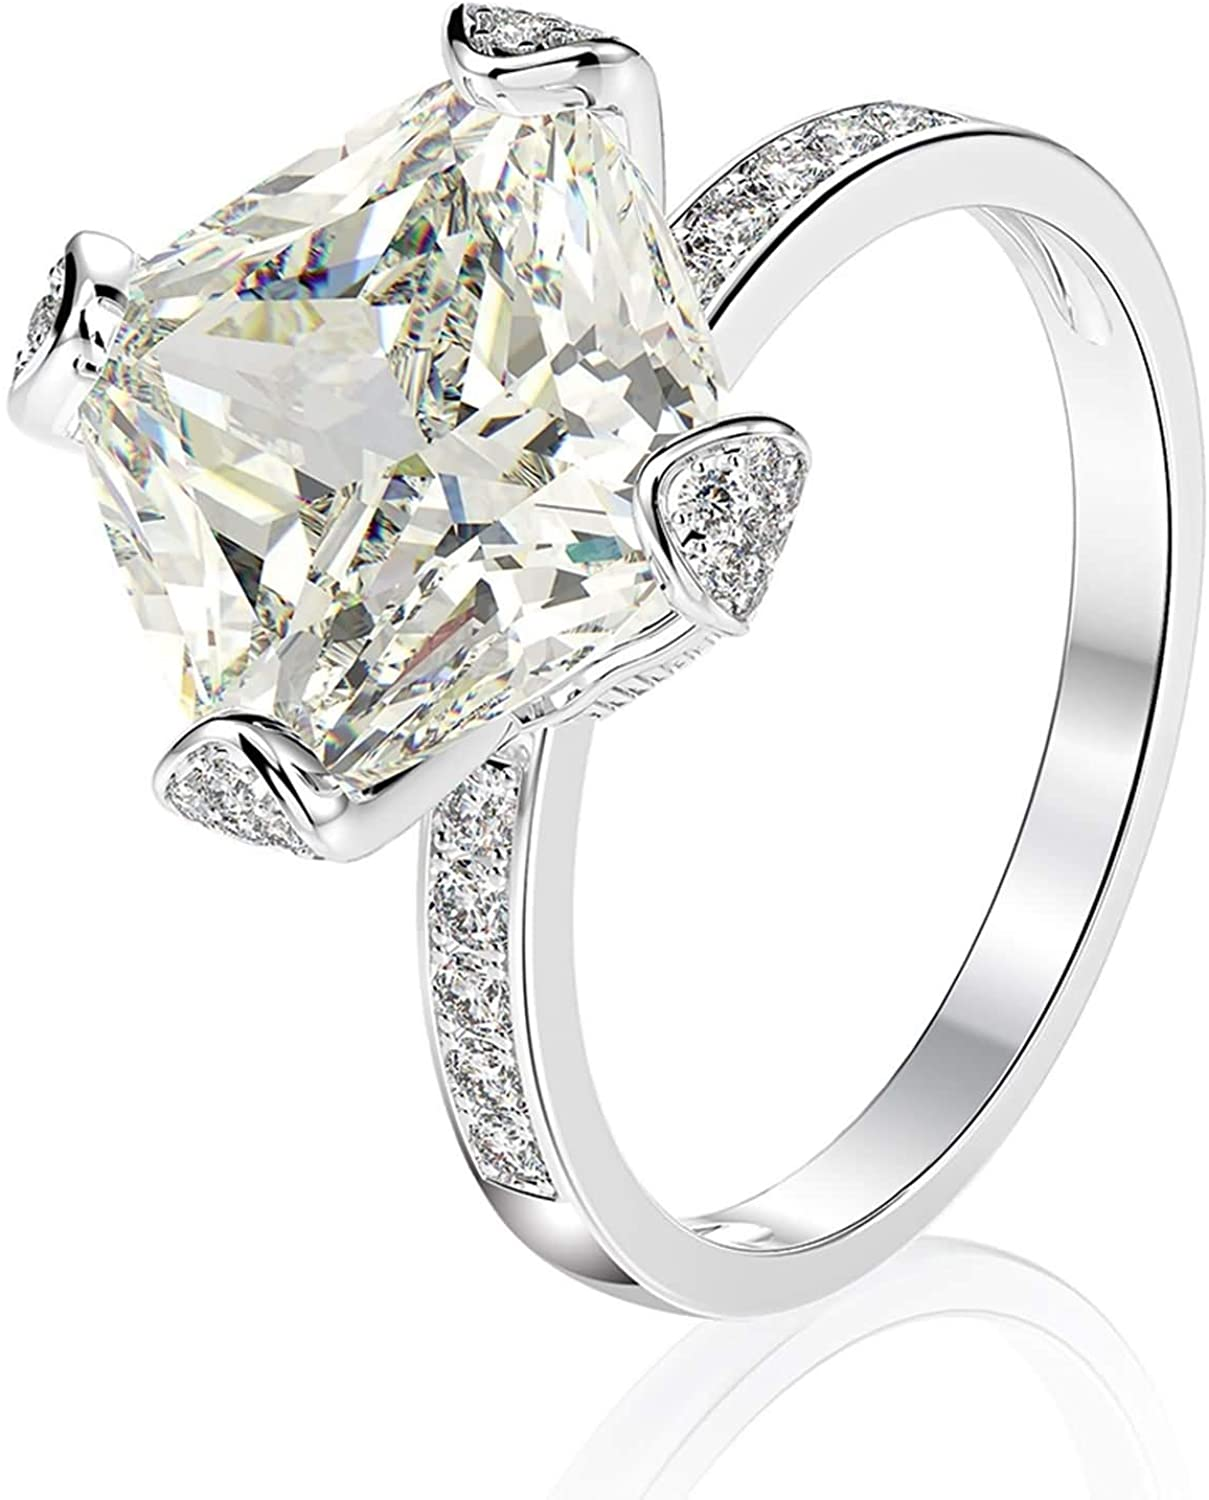 Beydodo Sterling Silver Rings Engagement for Women, Rings for Valentine S Day White Cushion Cubic Zirconia Size 5 to 9